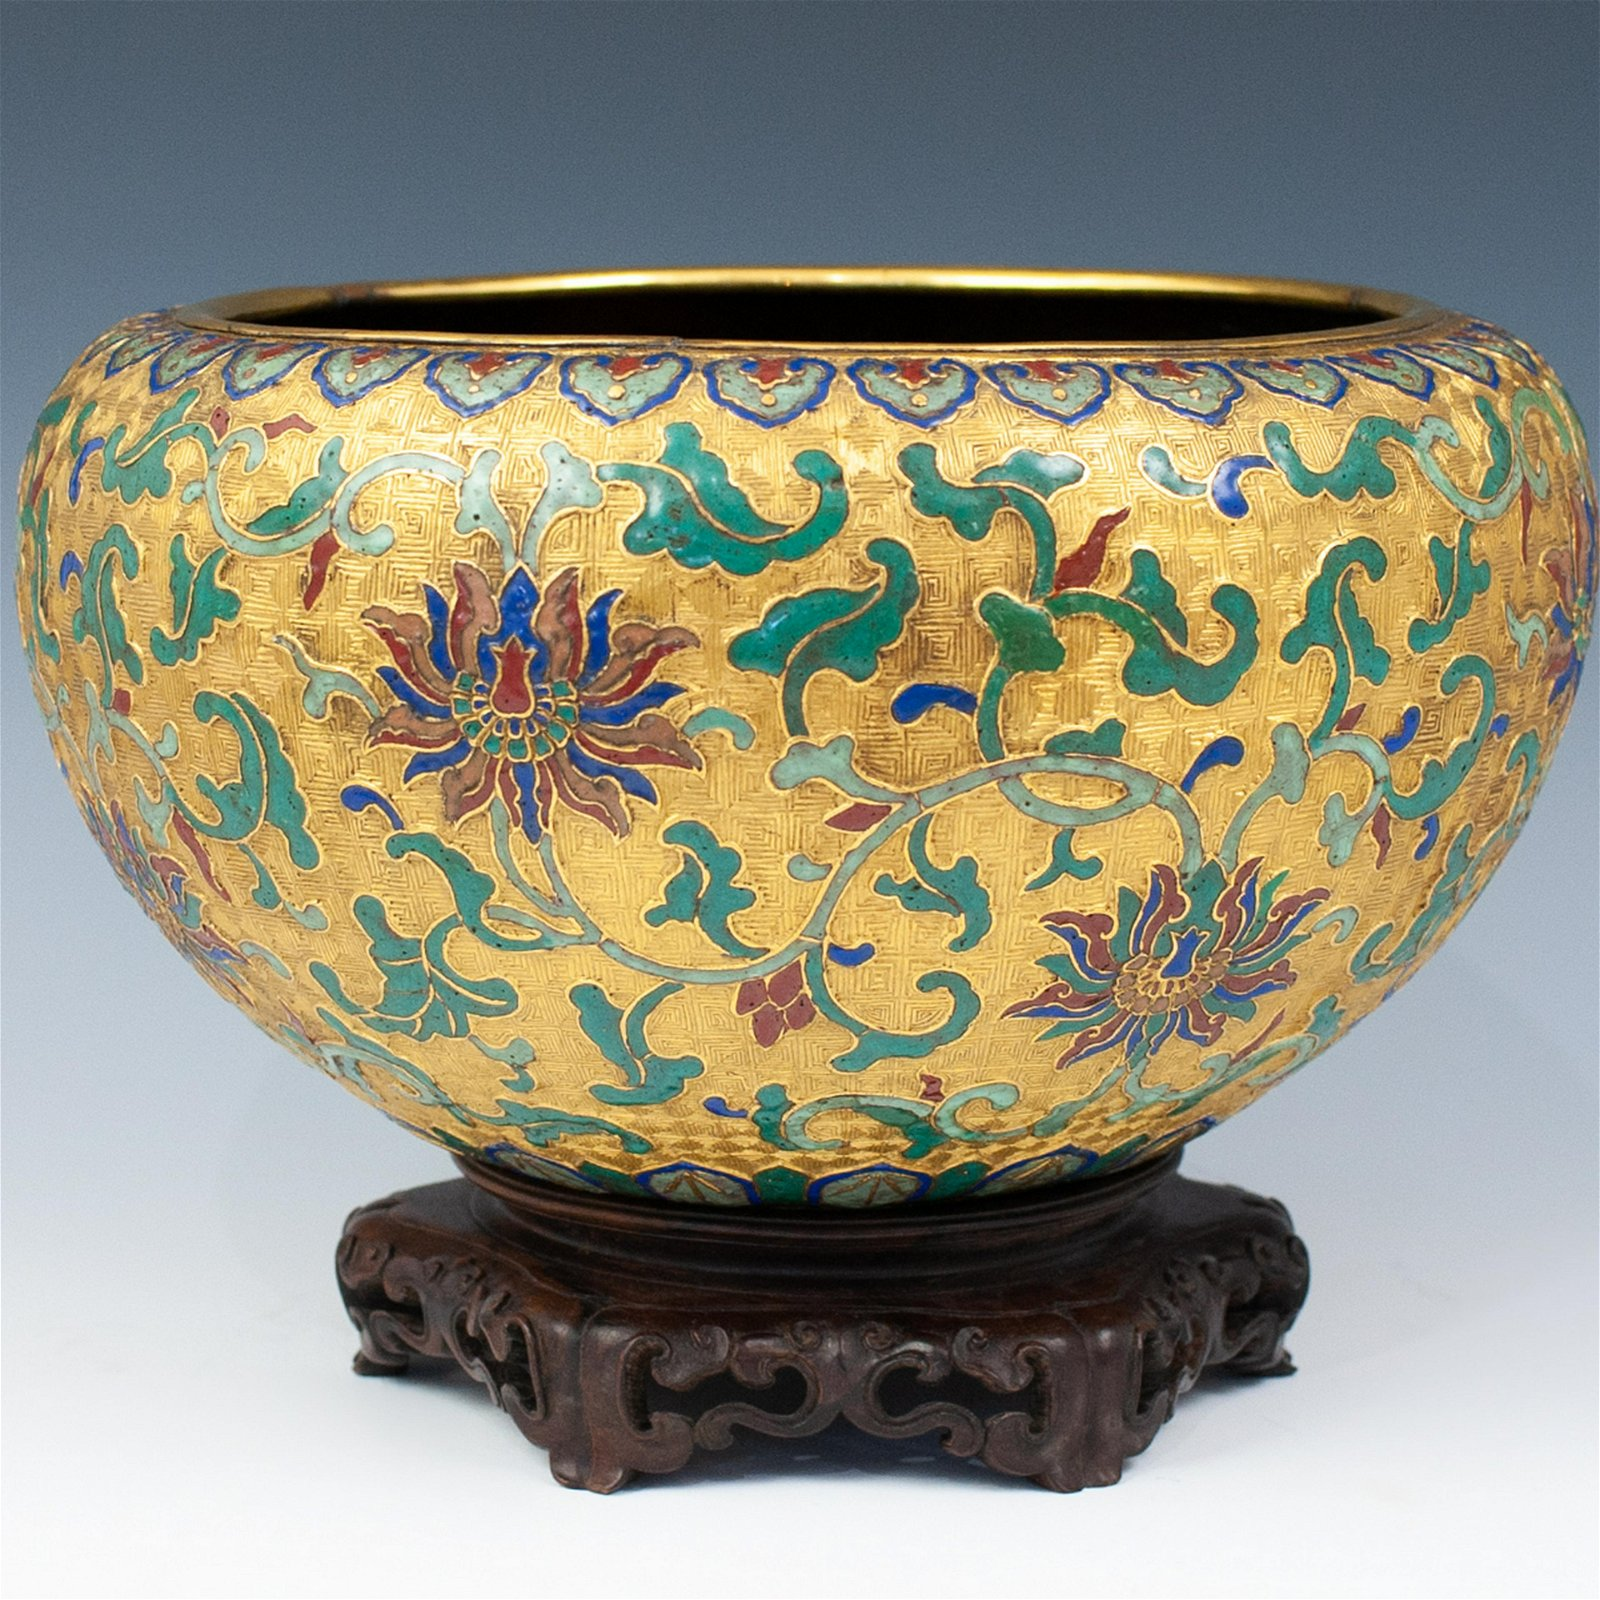 Antique Chinese Cloisonne Bowl